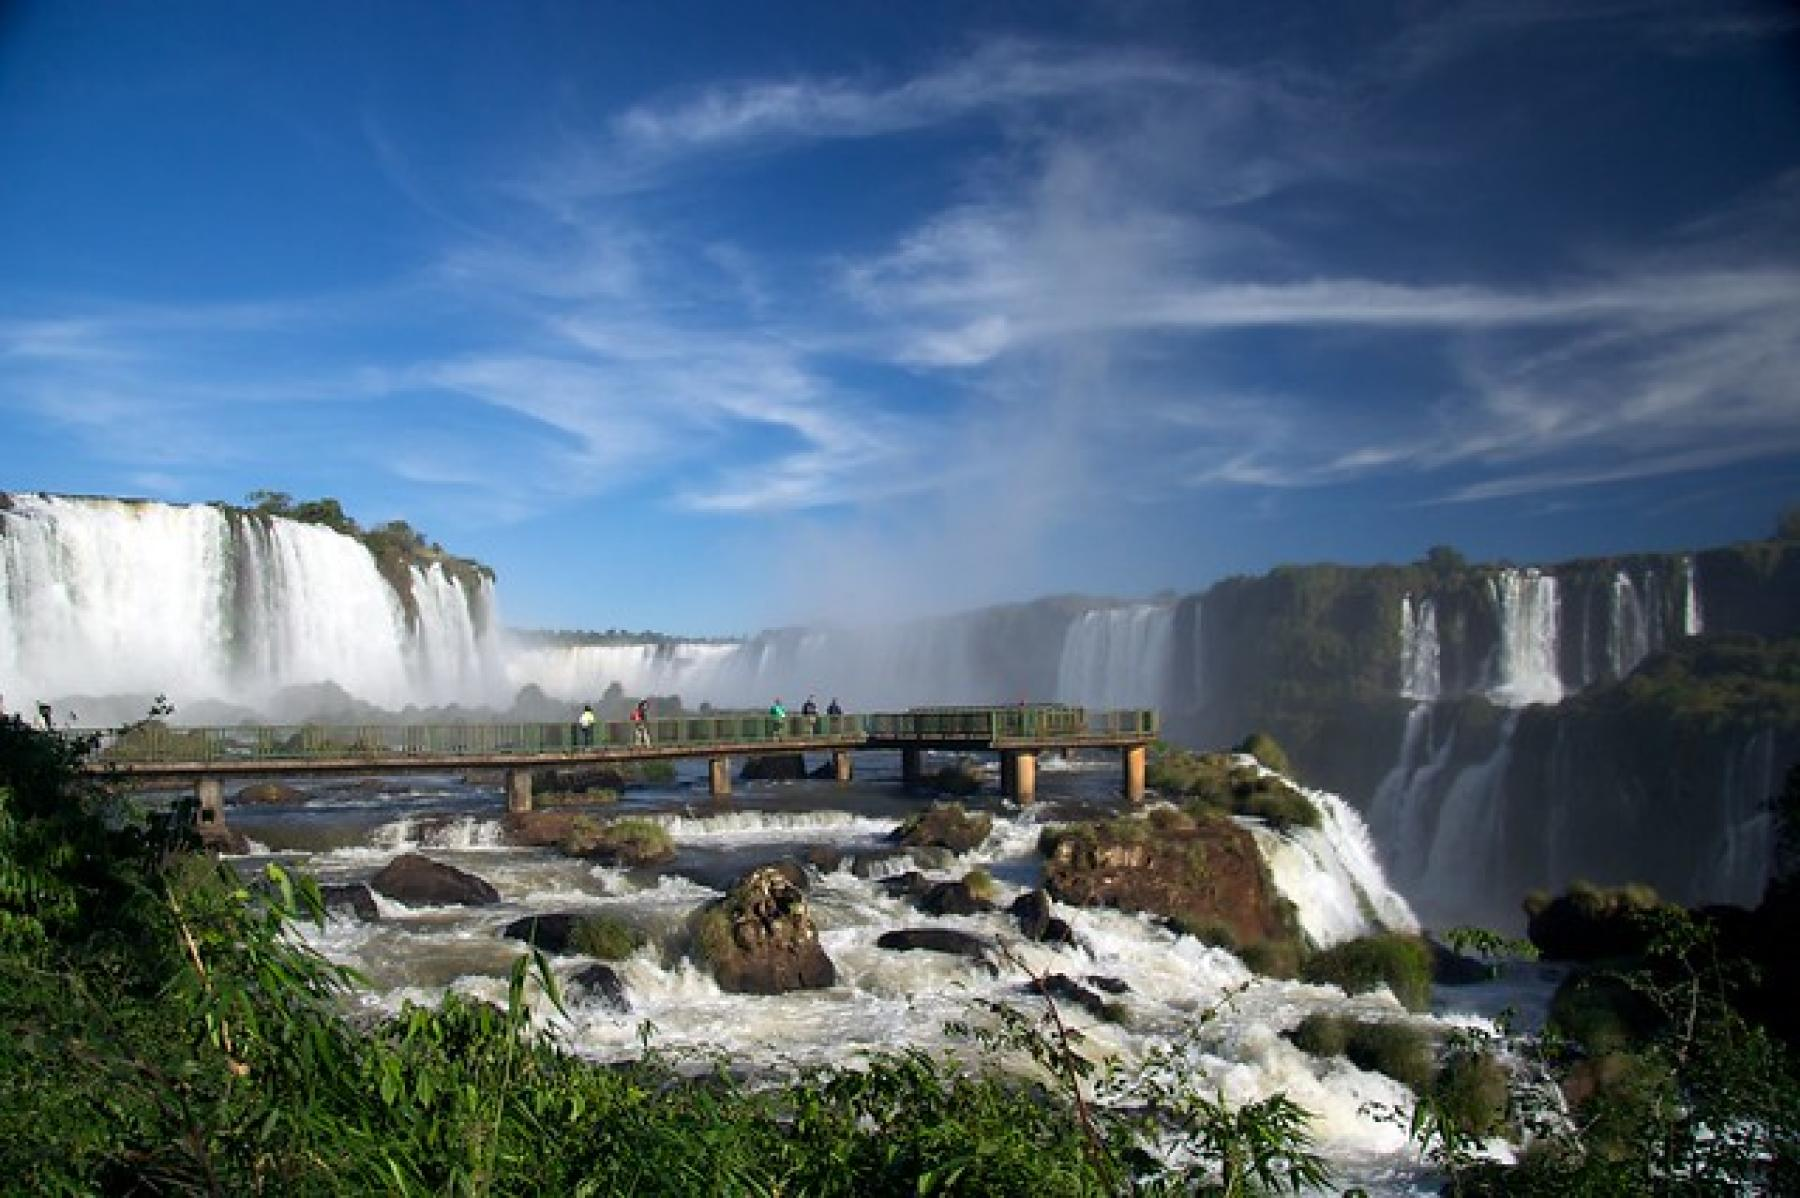 Experience South America: A Continent with Rich History, Culture and Nature starting at South America